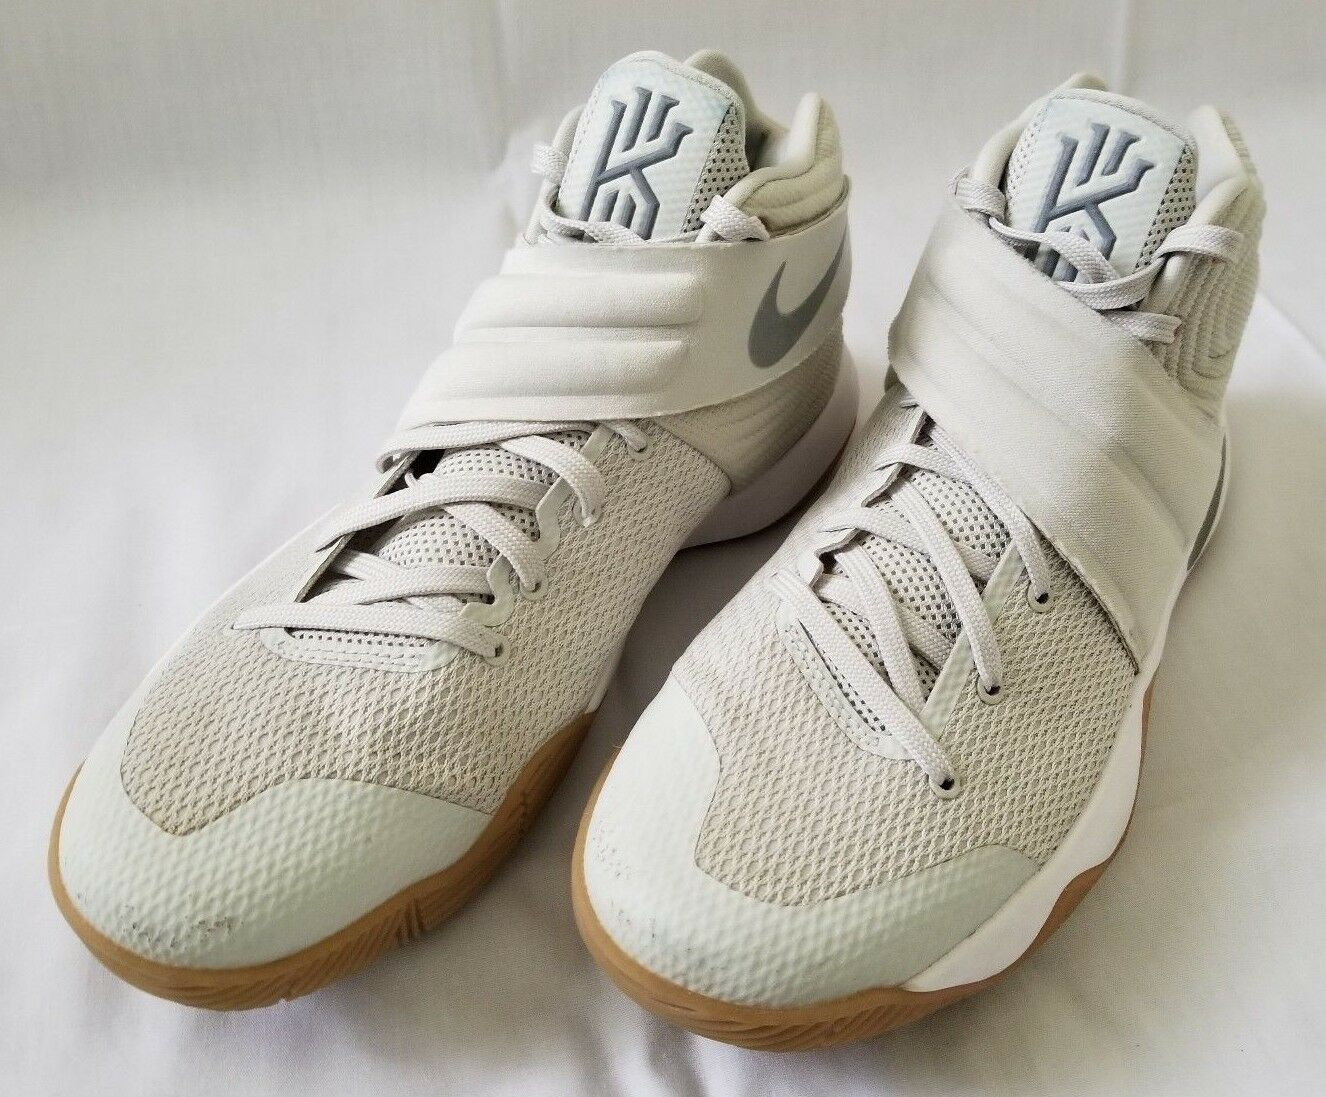 Mens Sz 9.5 Nike Kyrie 2 Summer Pack Light Bone Reflective Silver White Sneakers